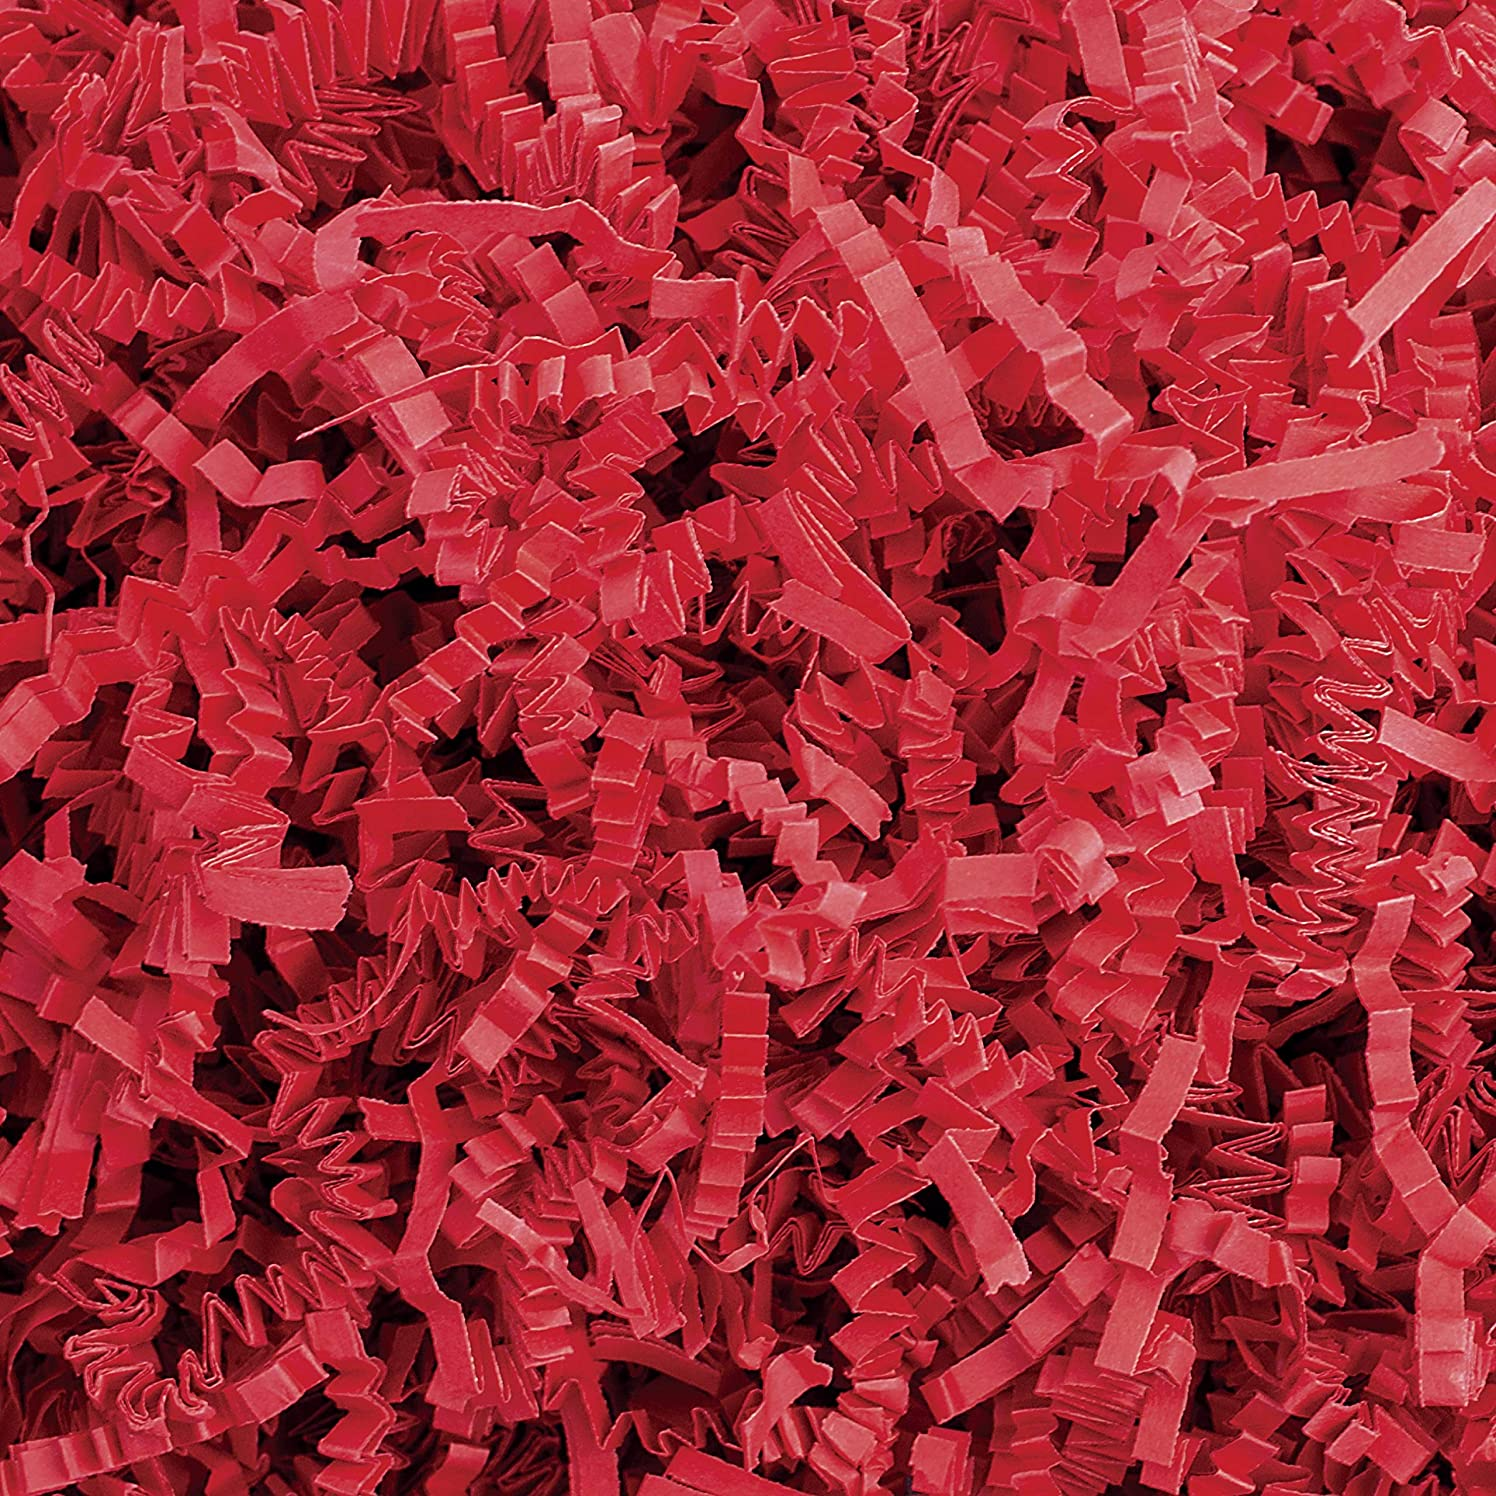 Crinkle Cut Paper Shred Filler (1 LB) for Gift Wrapping & Basket Filling - Red | MagicWater Supply